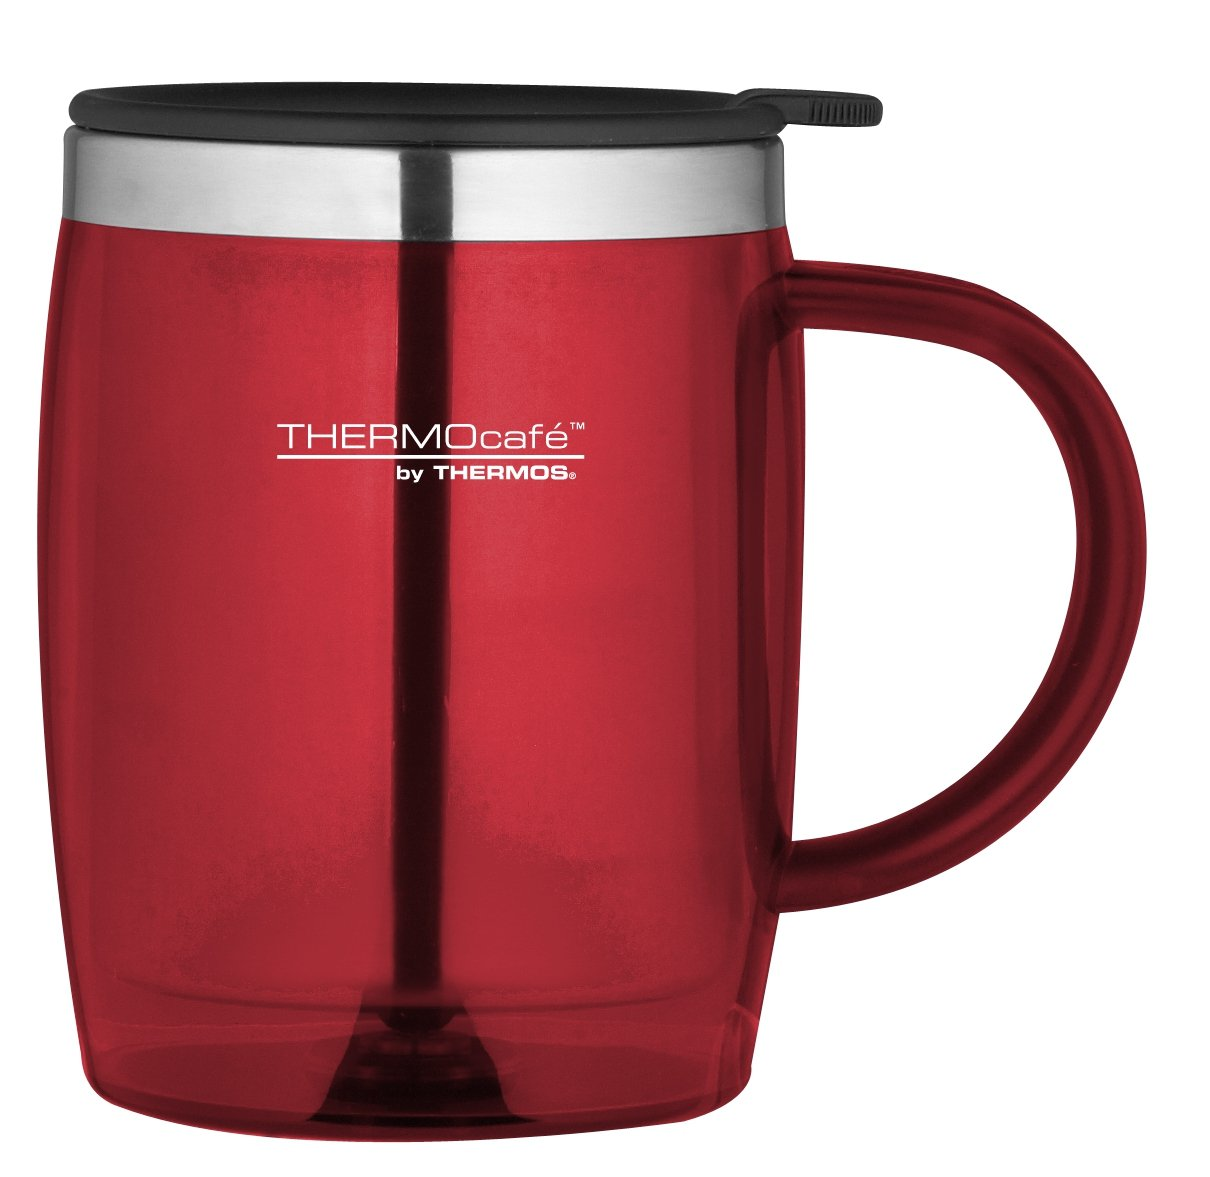 Thermos Cafe Thermos Thermocafe Desk Mug 450 Ml Red Red Desk Mug